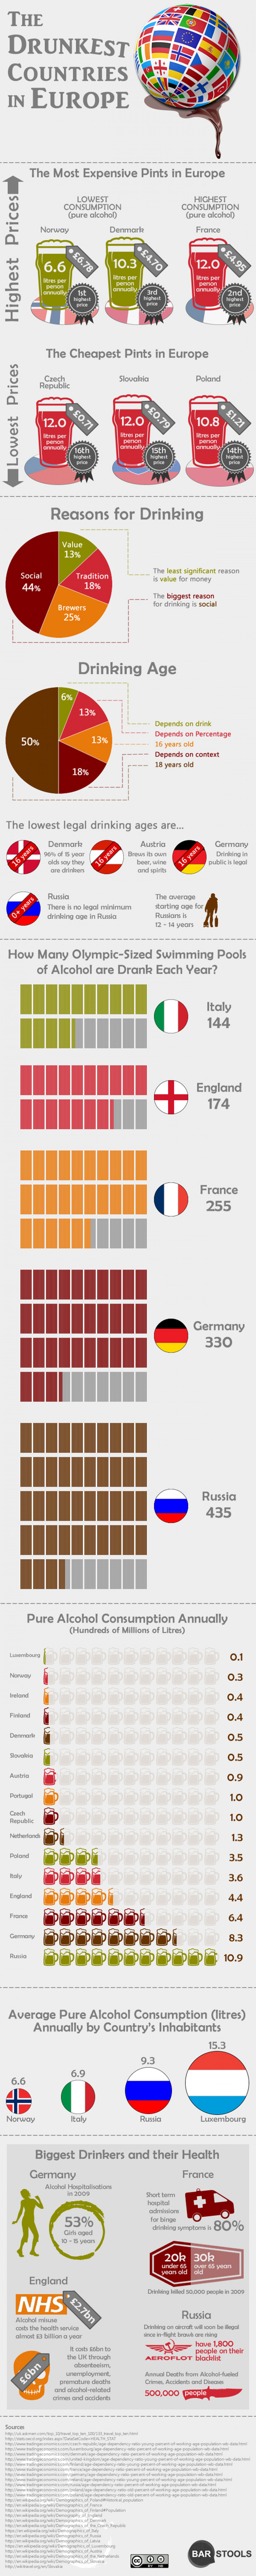 The Drunkest Countries in Europe  Infographic